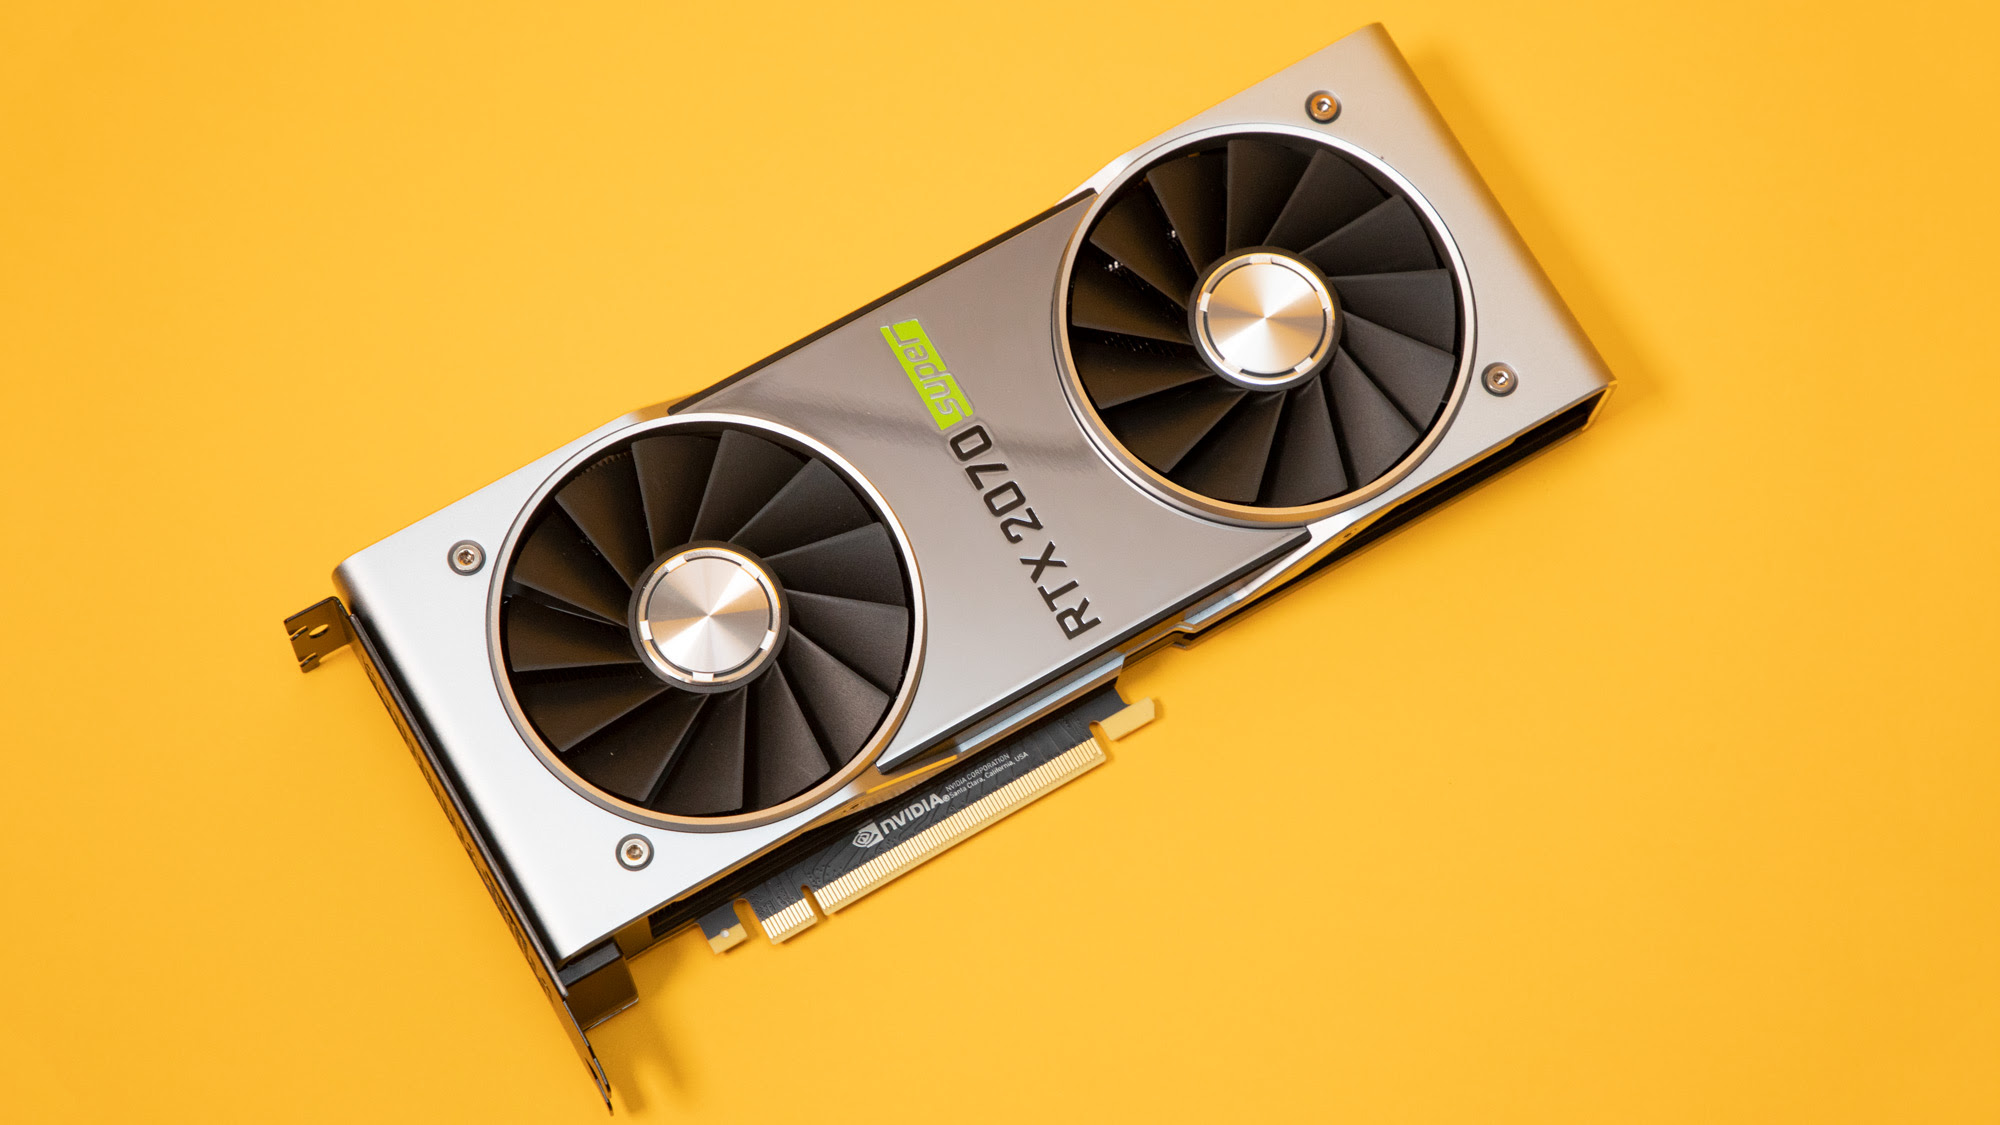 4. Nvidia GeForce RTX 2070 Super